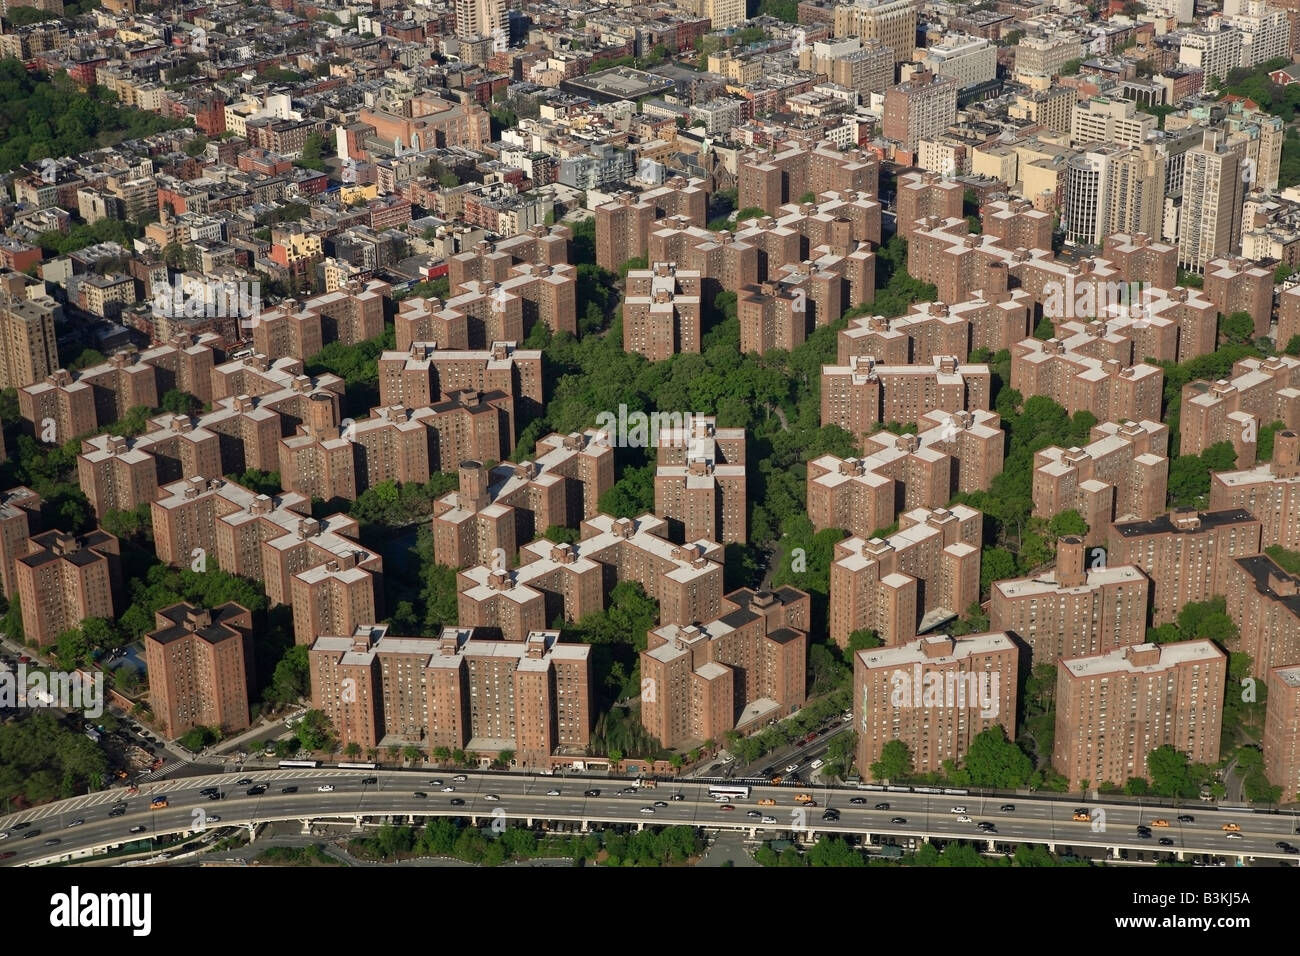 Aerial view of stuyvesant town and peter cooper village for Stuyvesant town peter cooper village